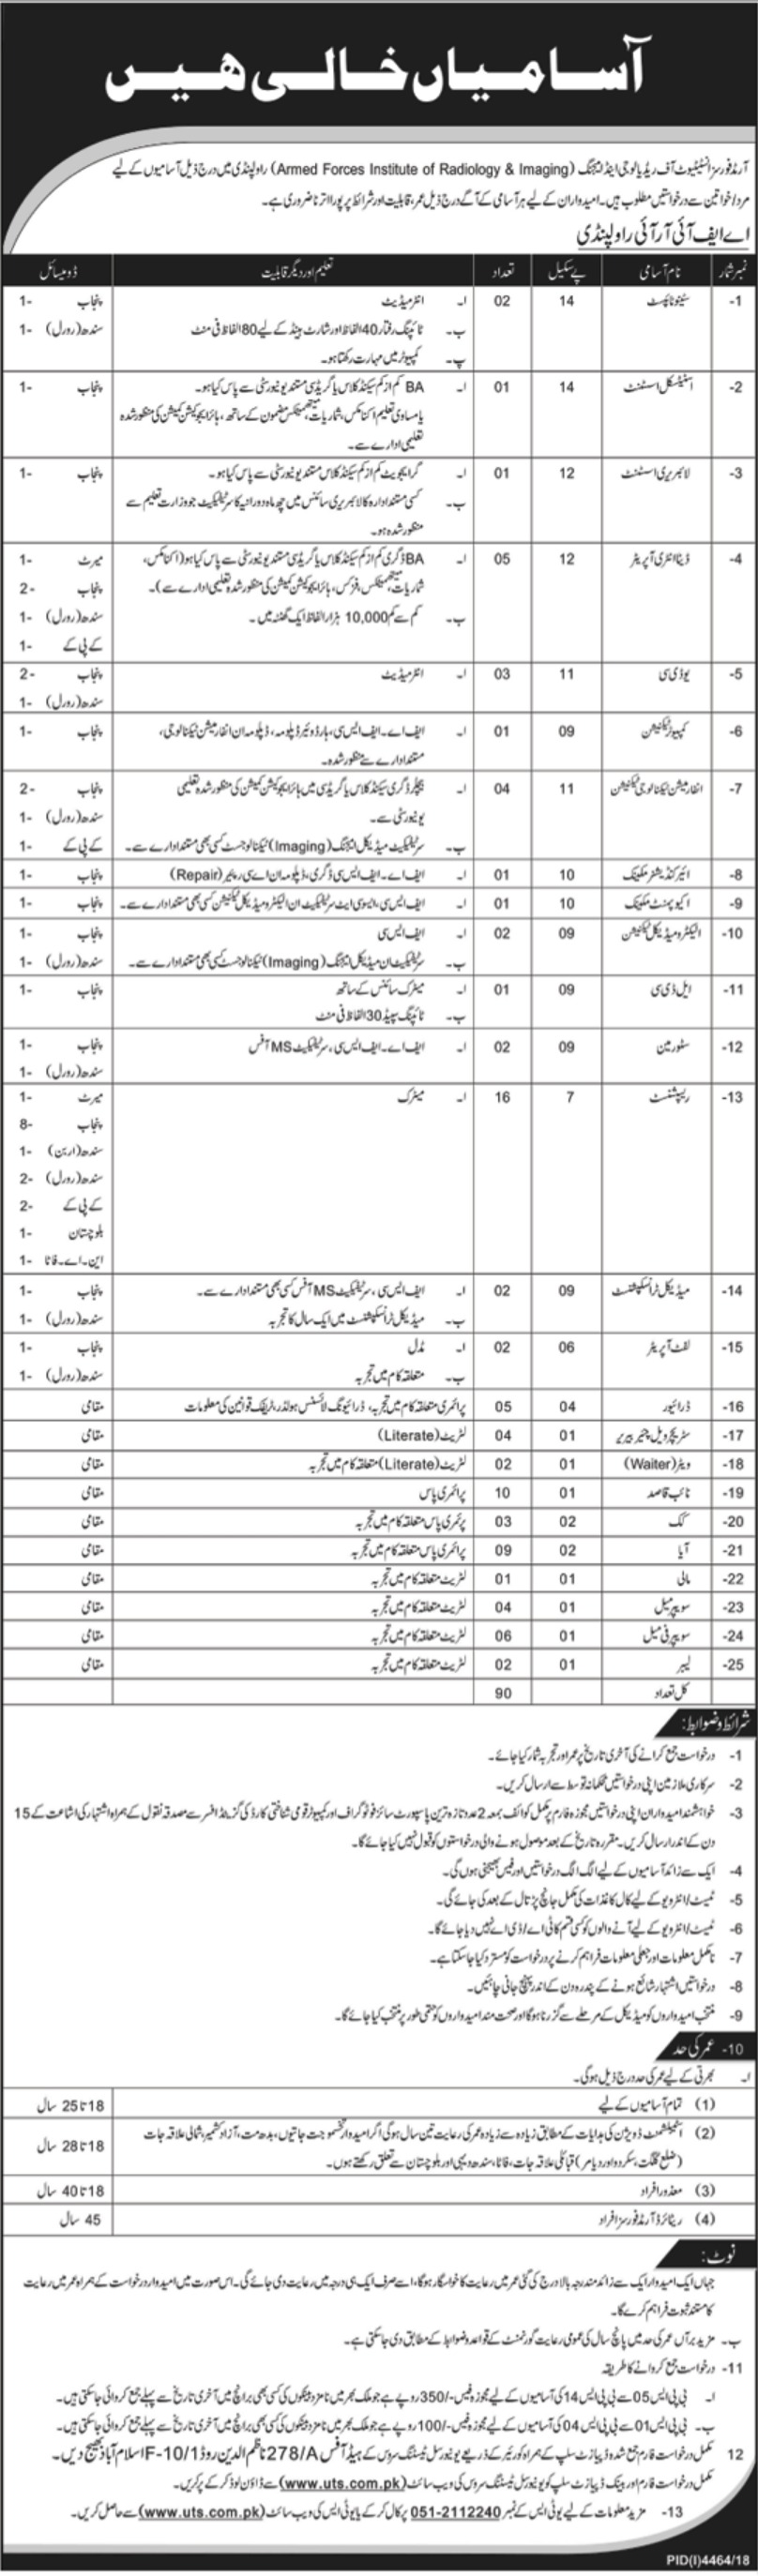 Armed Forces Institute of Radiology & Imaging AFIRI Rawalpindi Jobs 2019 Latest